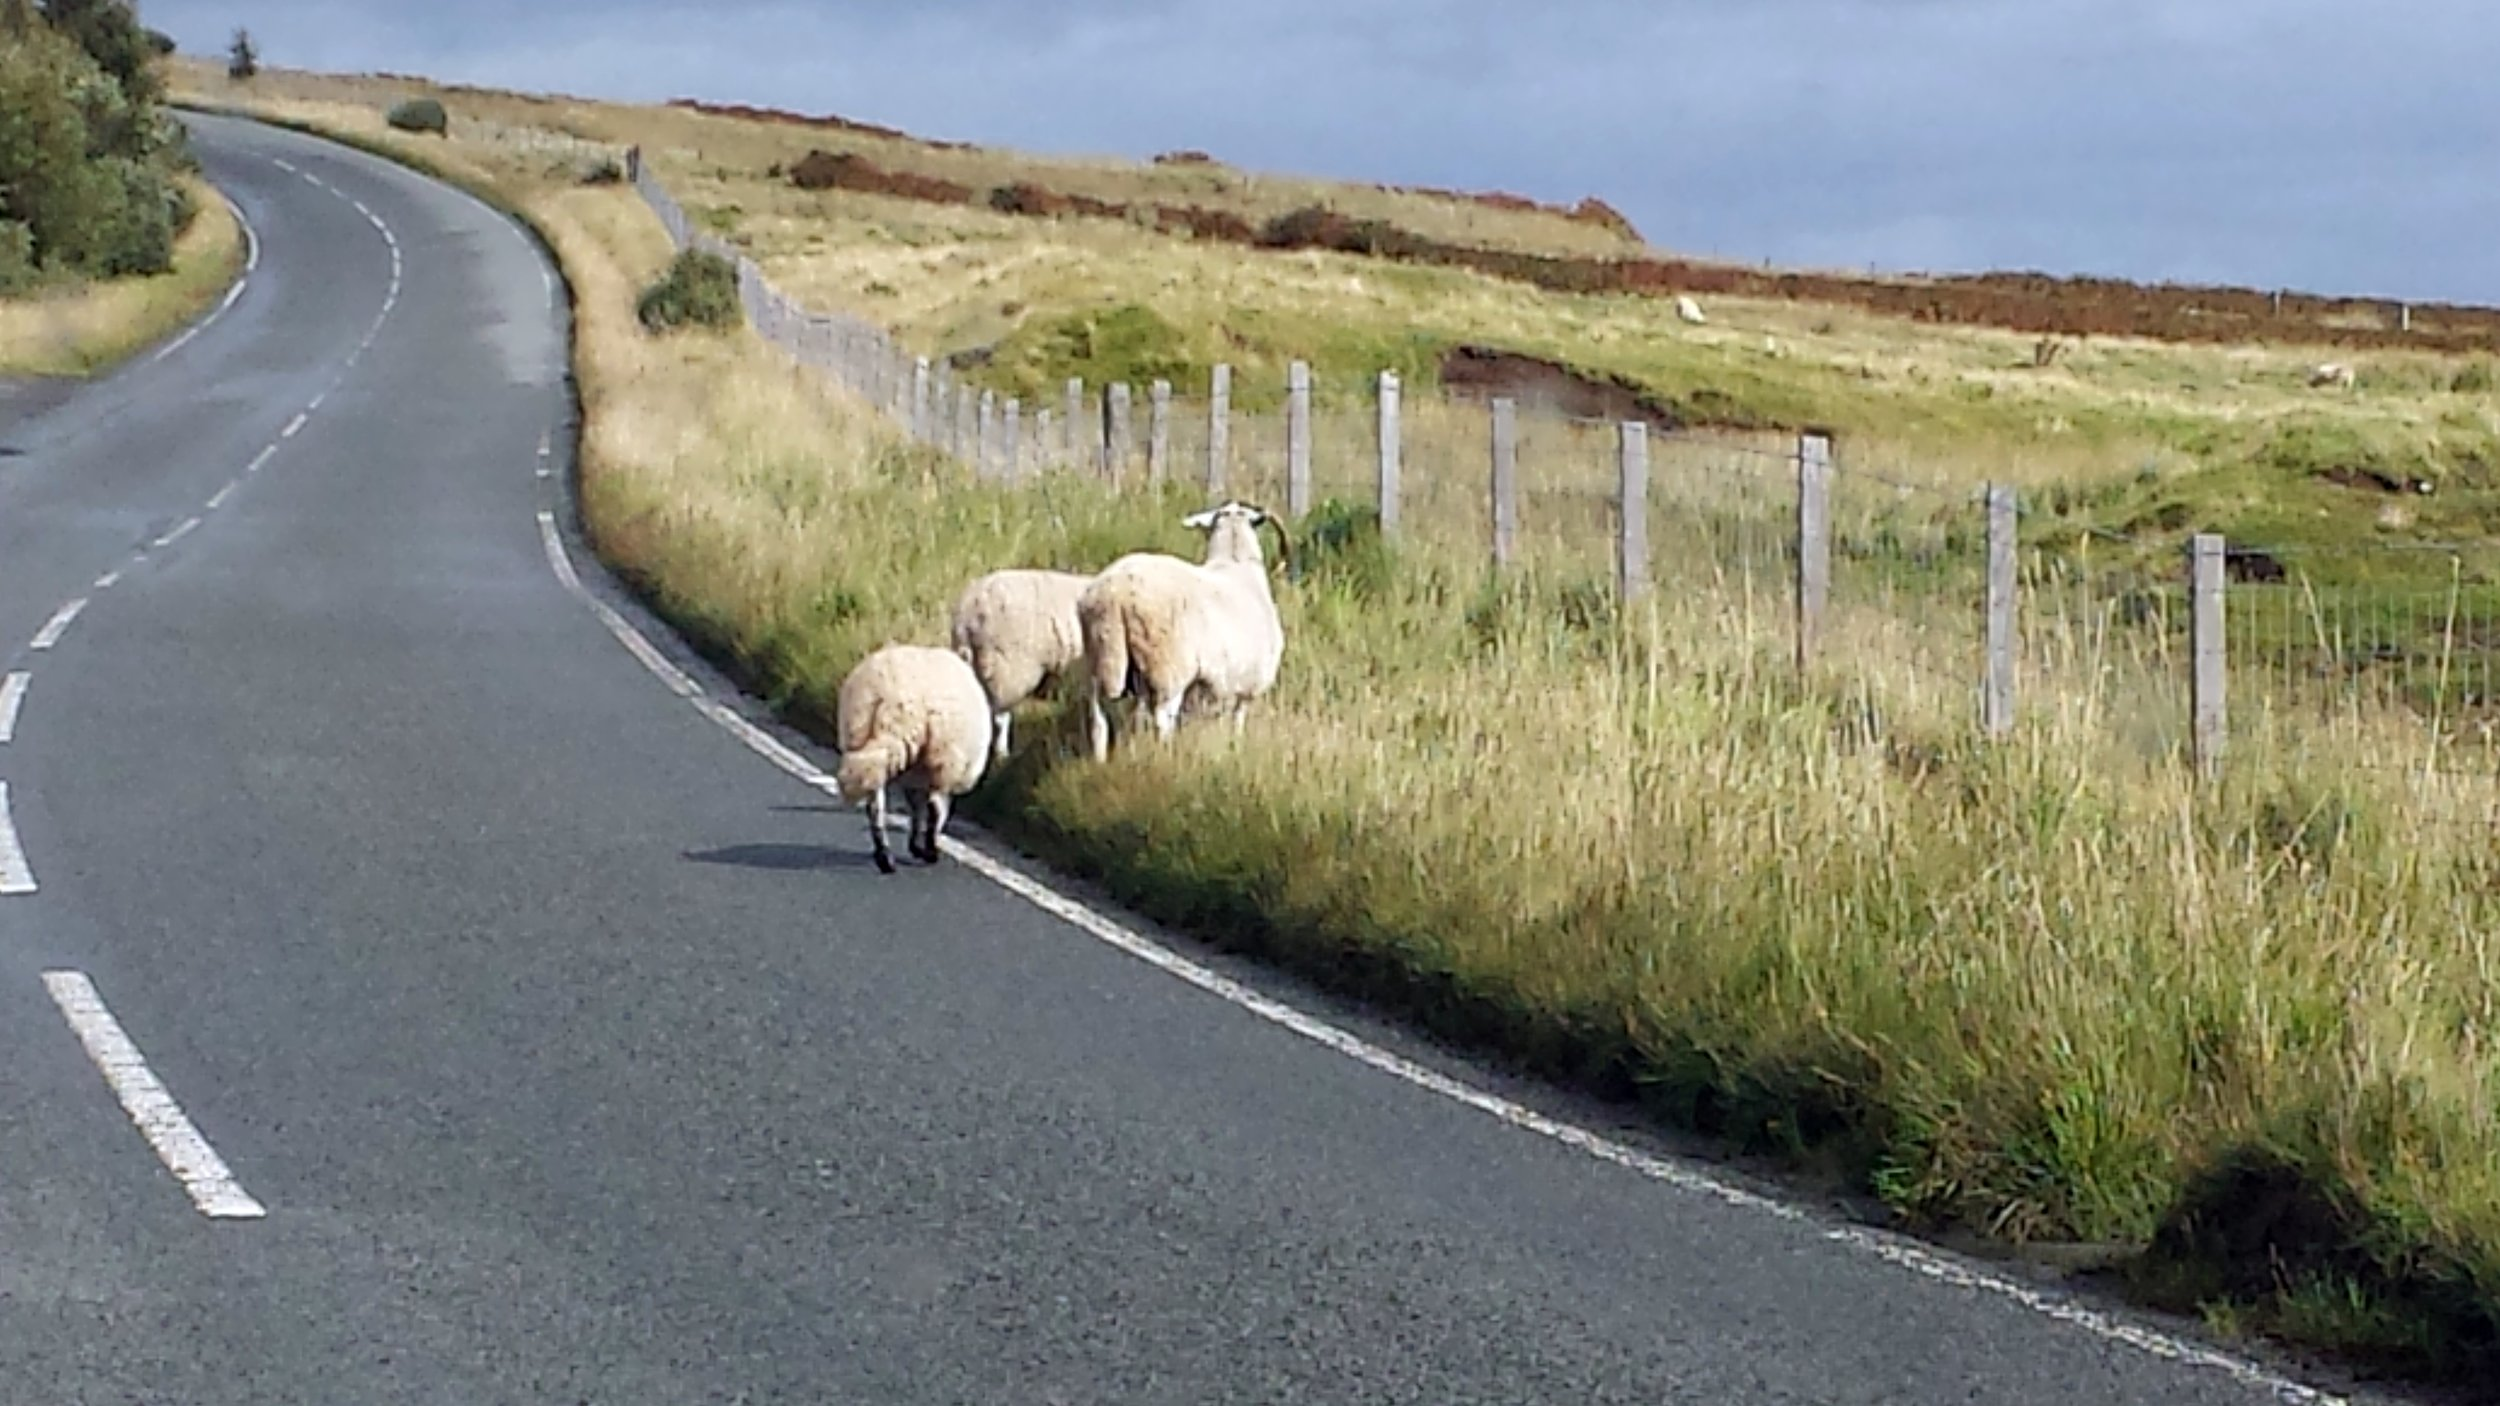 20160903_124313 skye sheep.jpg